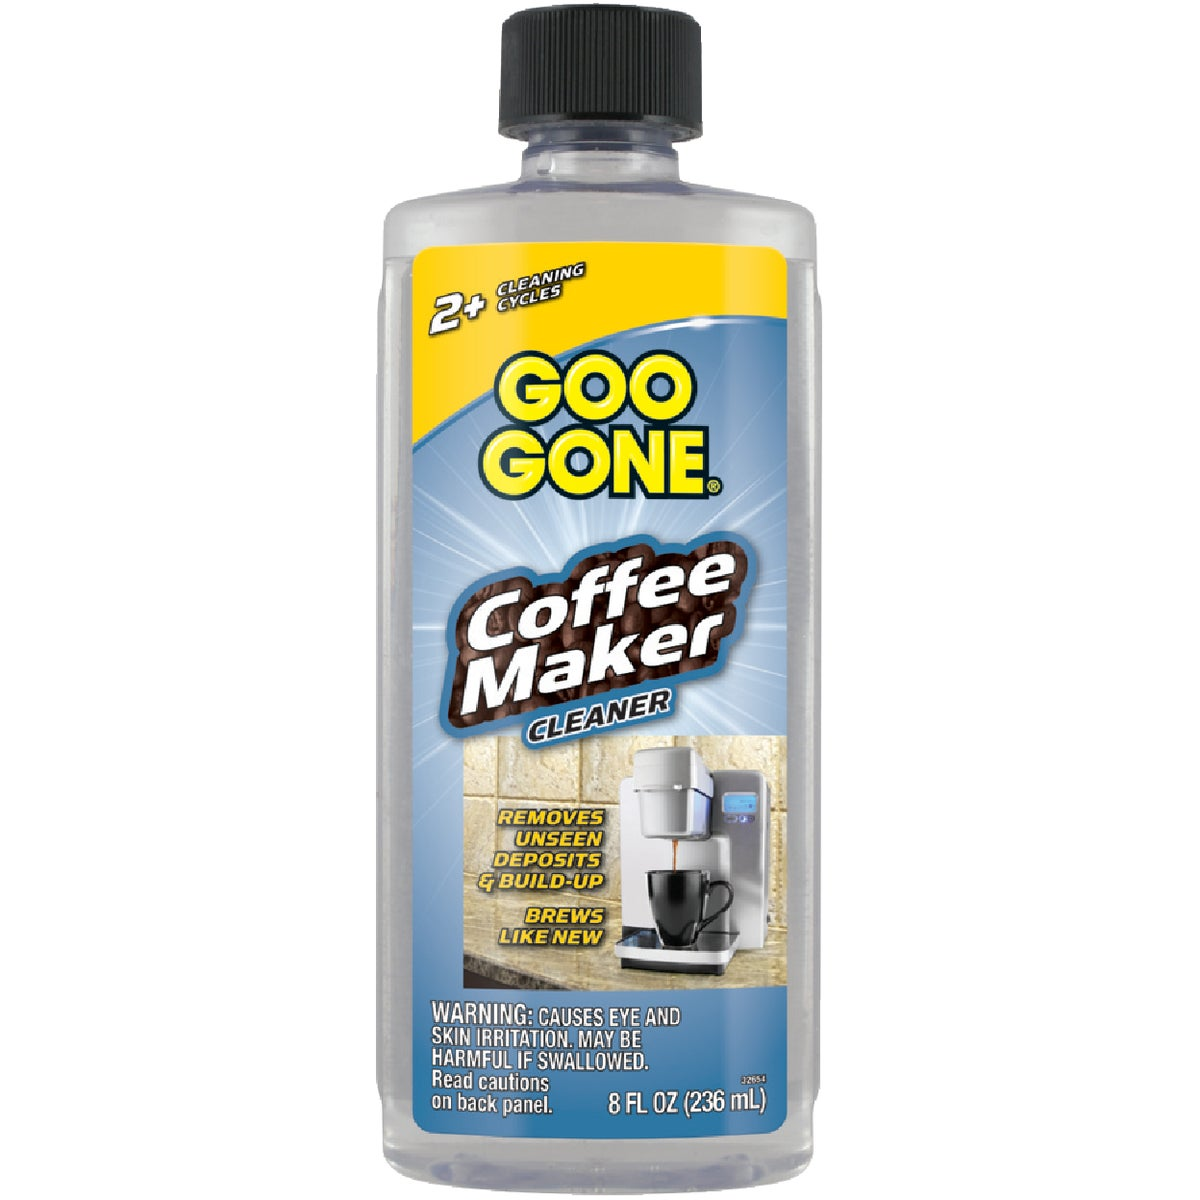 8OZ COFFEE MAKER CLEANER - 2039 by Weiman Products Llc